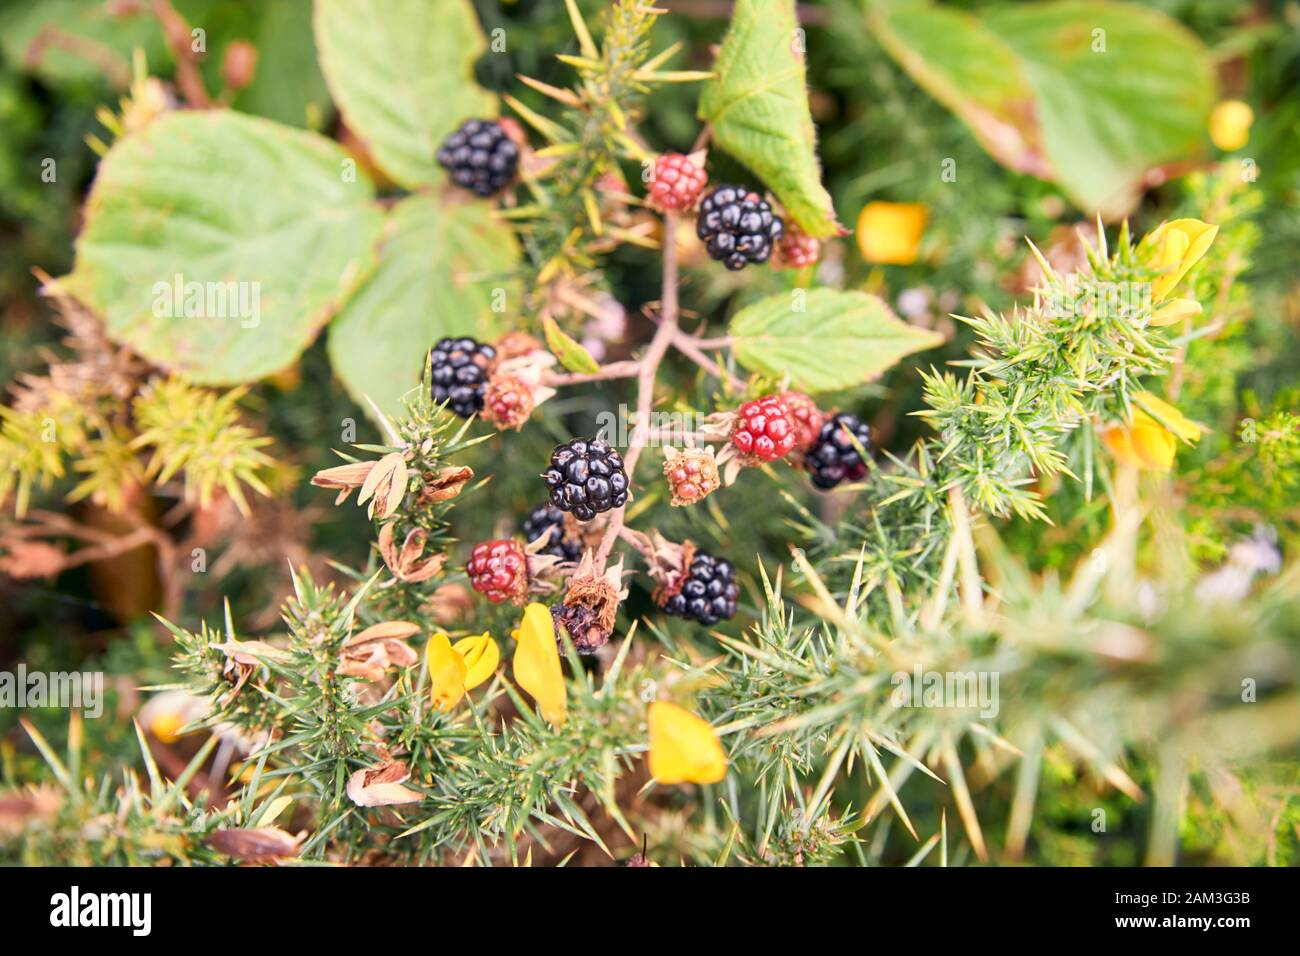 A bunch of redberries and blackberries hanging down with leaves in the background. vegetarian food concept Stock Photo